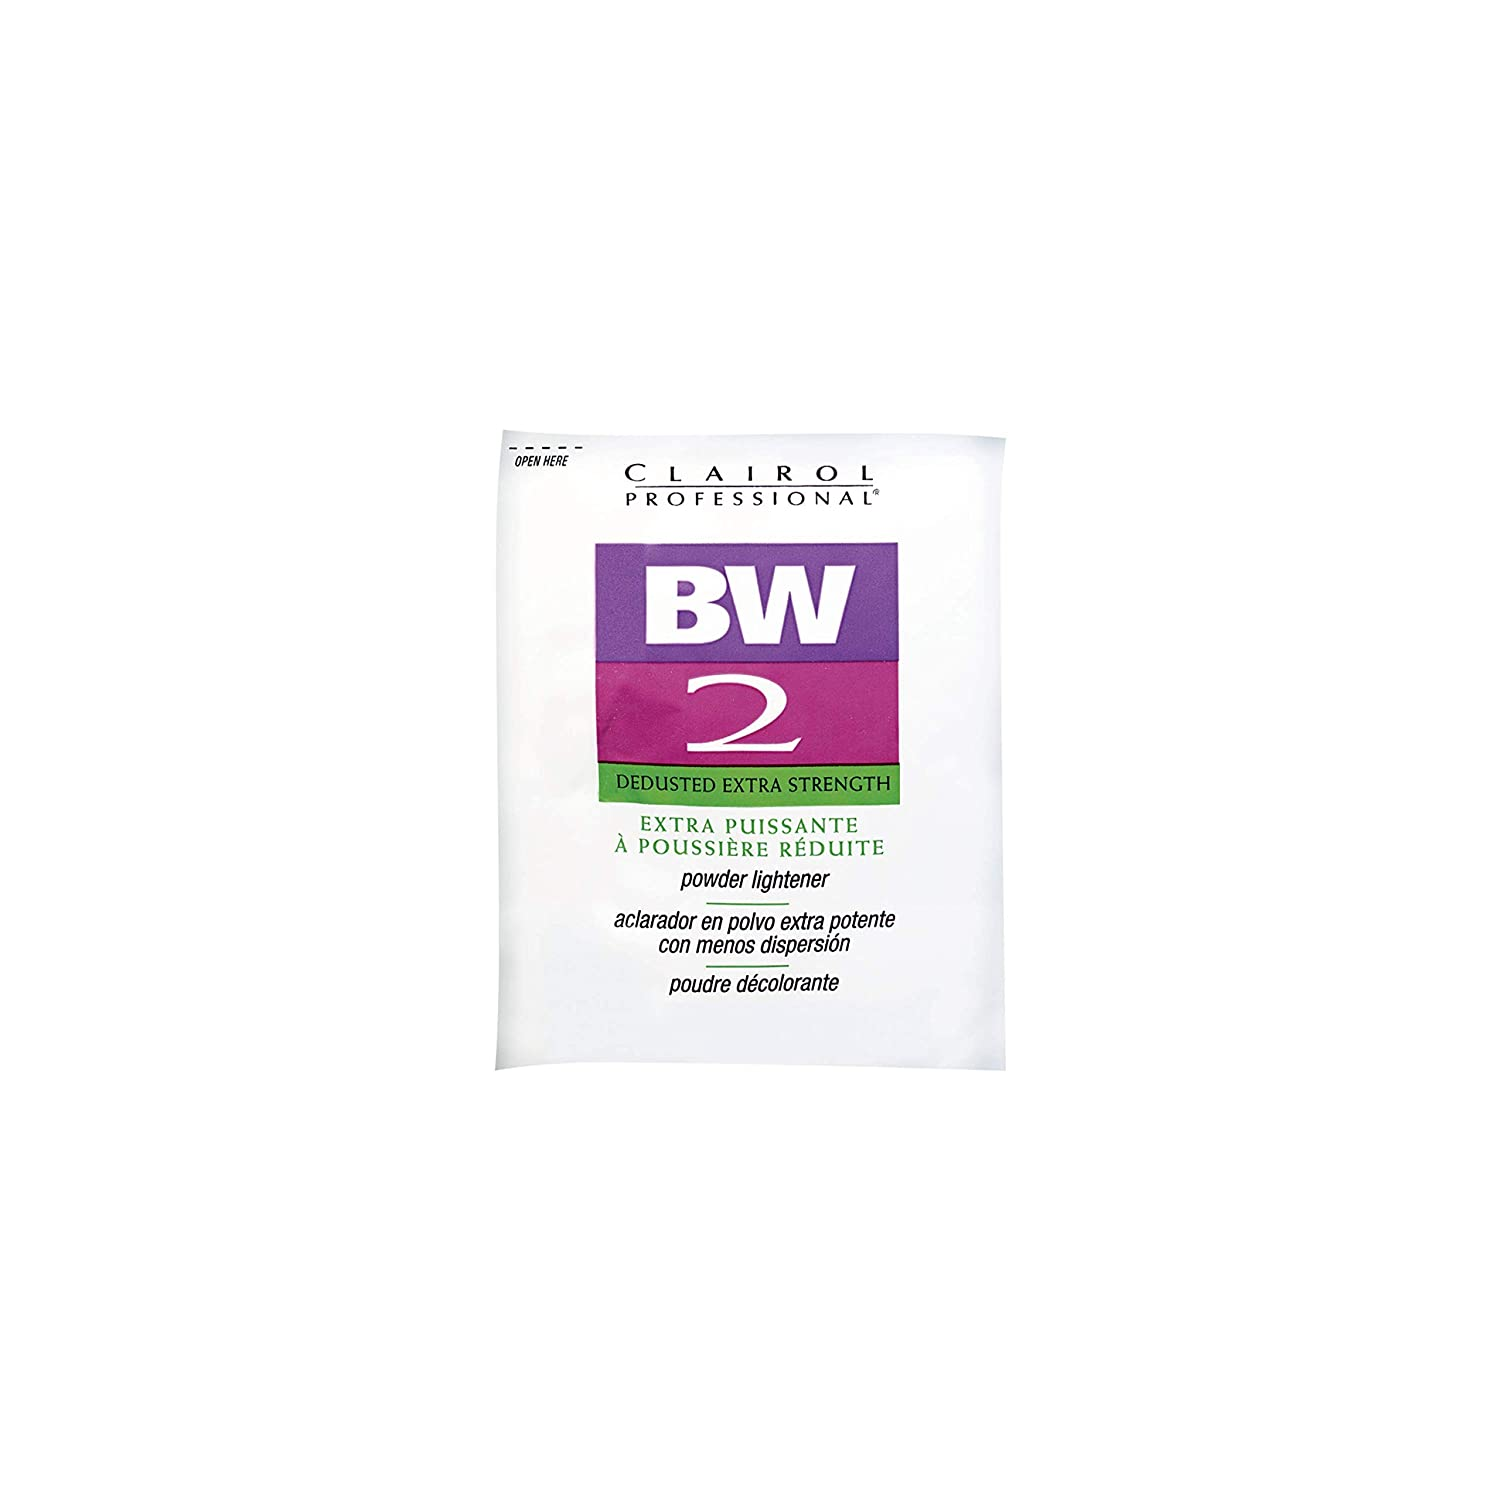 Clairol Professional BW2 Lightener for Hair Coloring, 1 oz